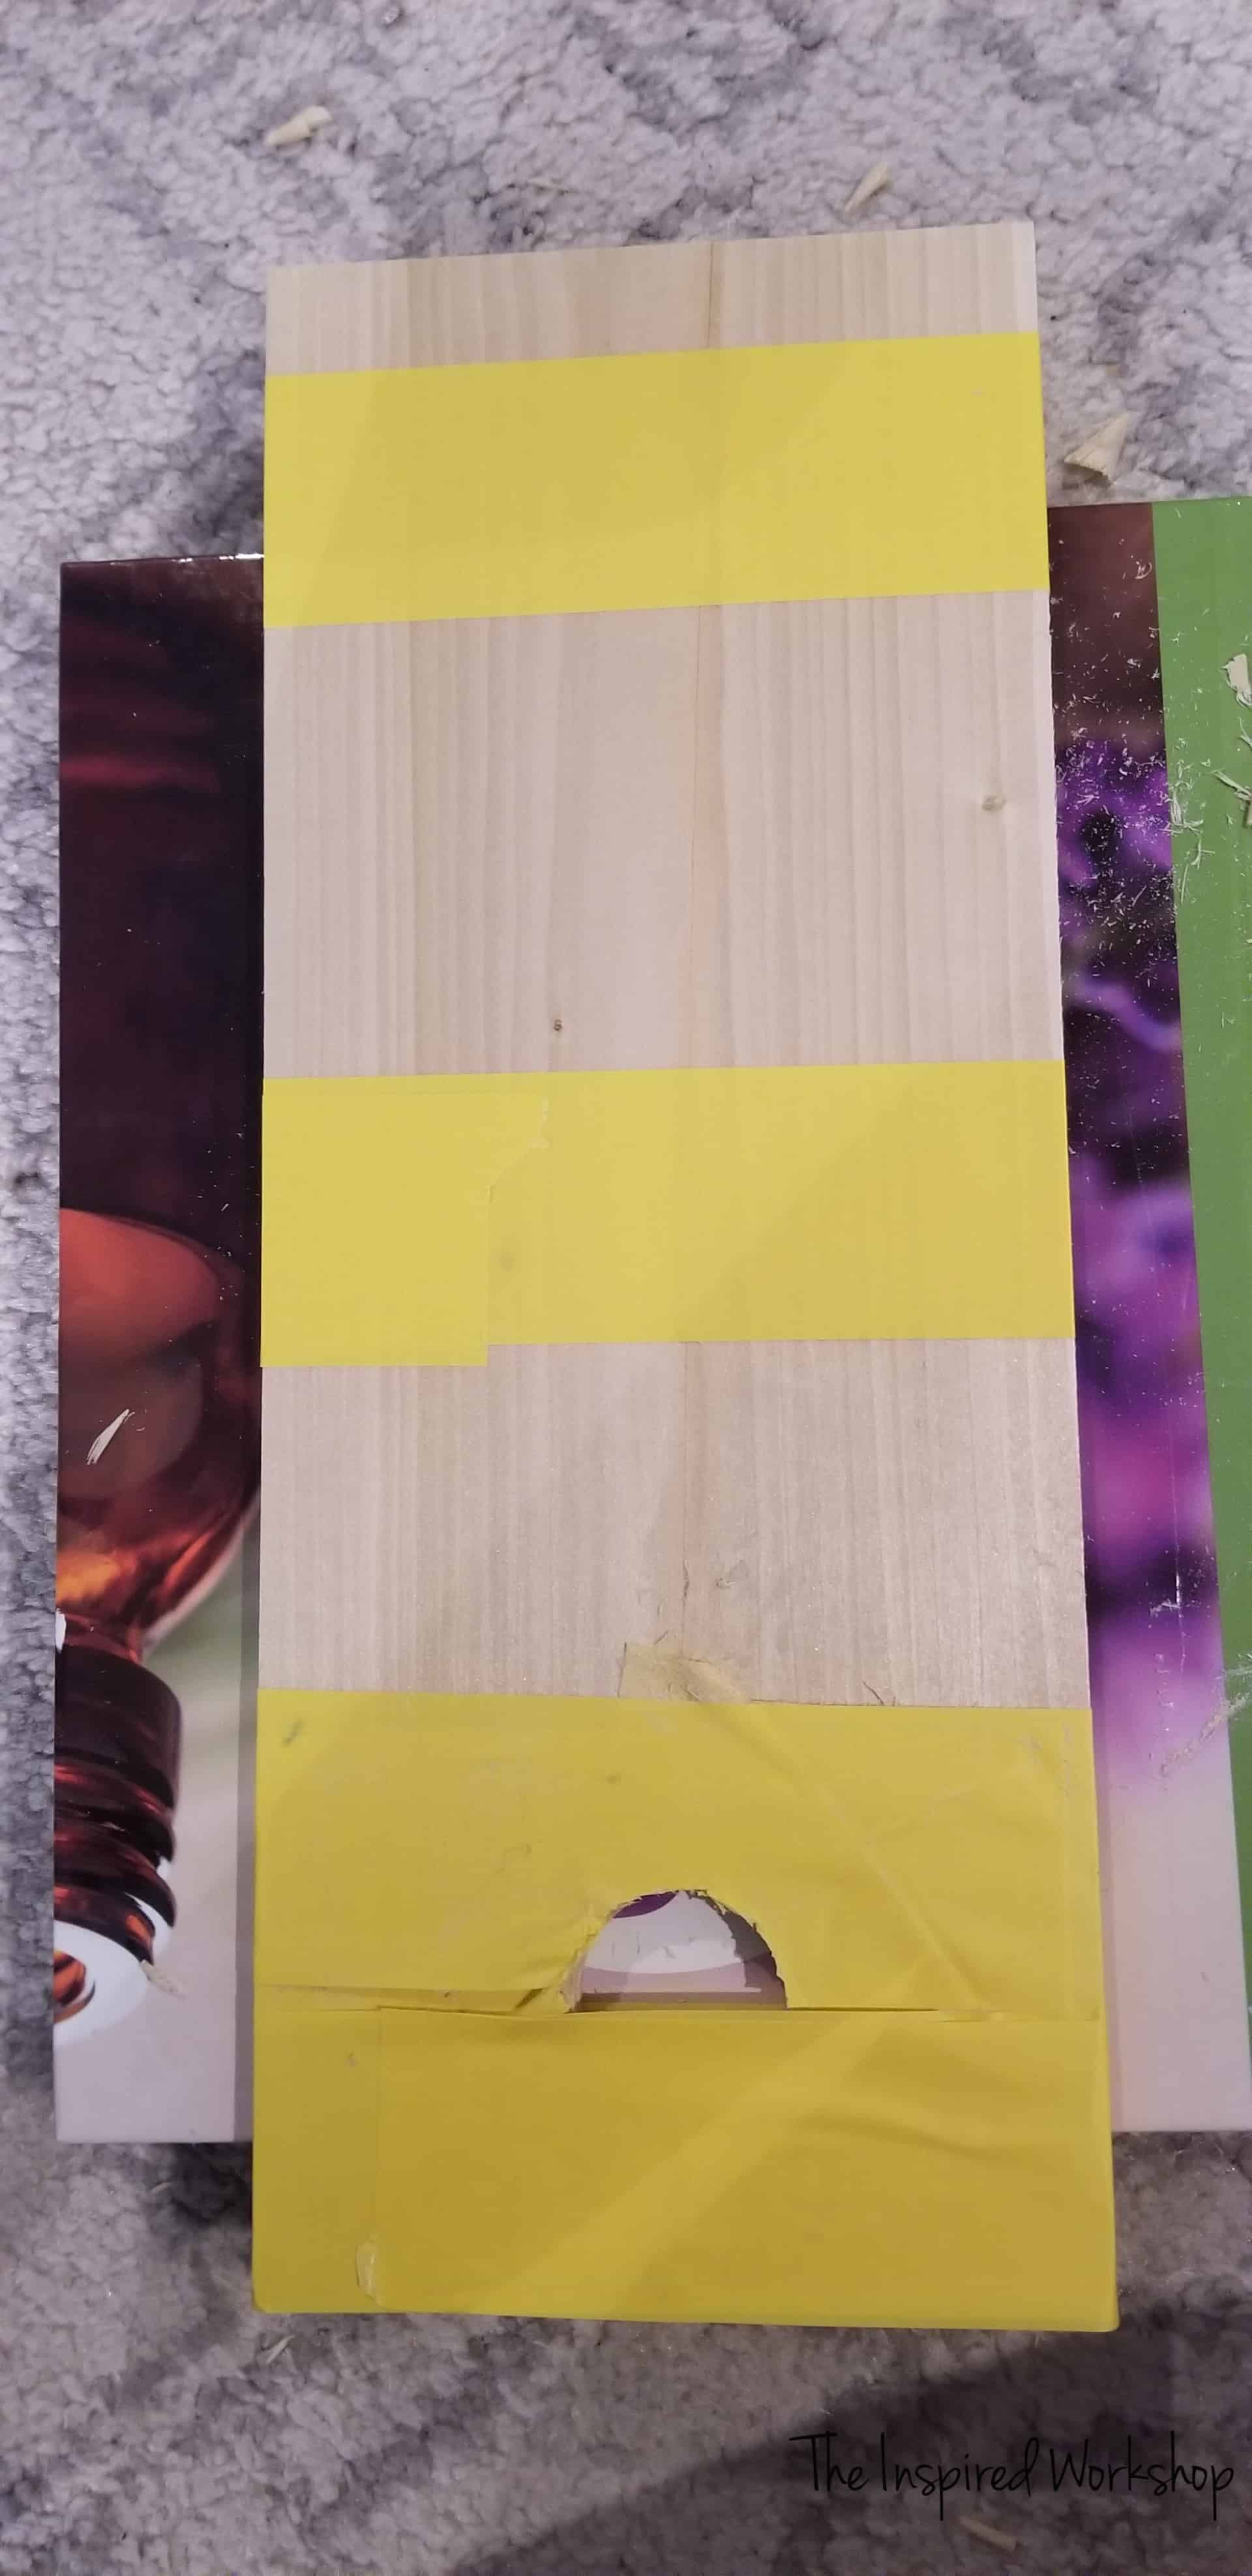 Gluing the damaged board